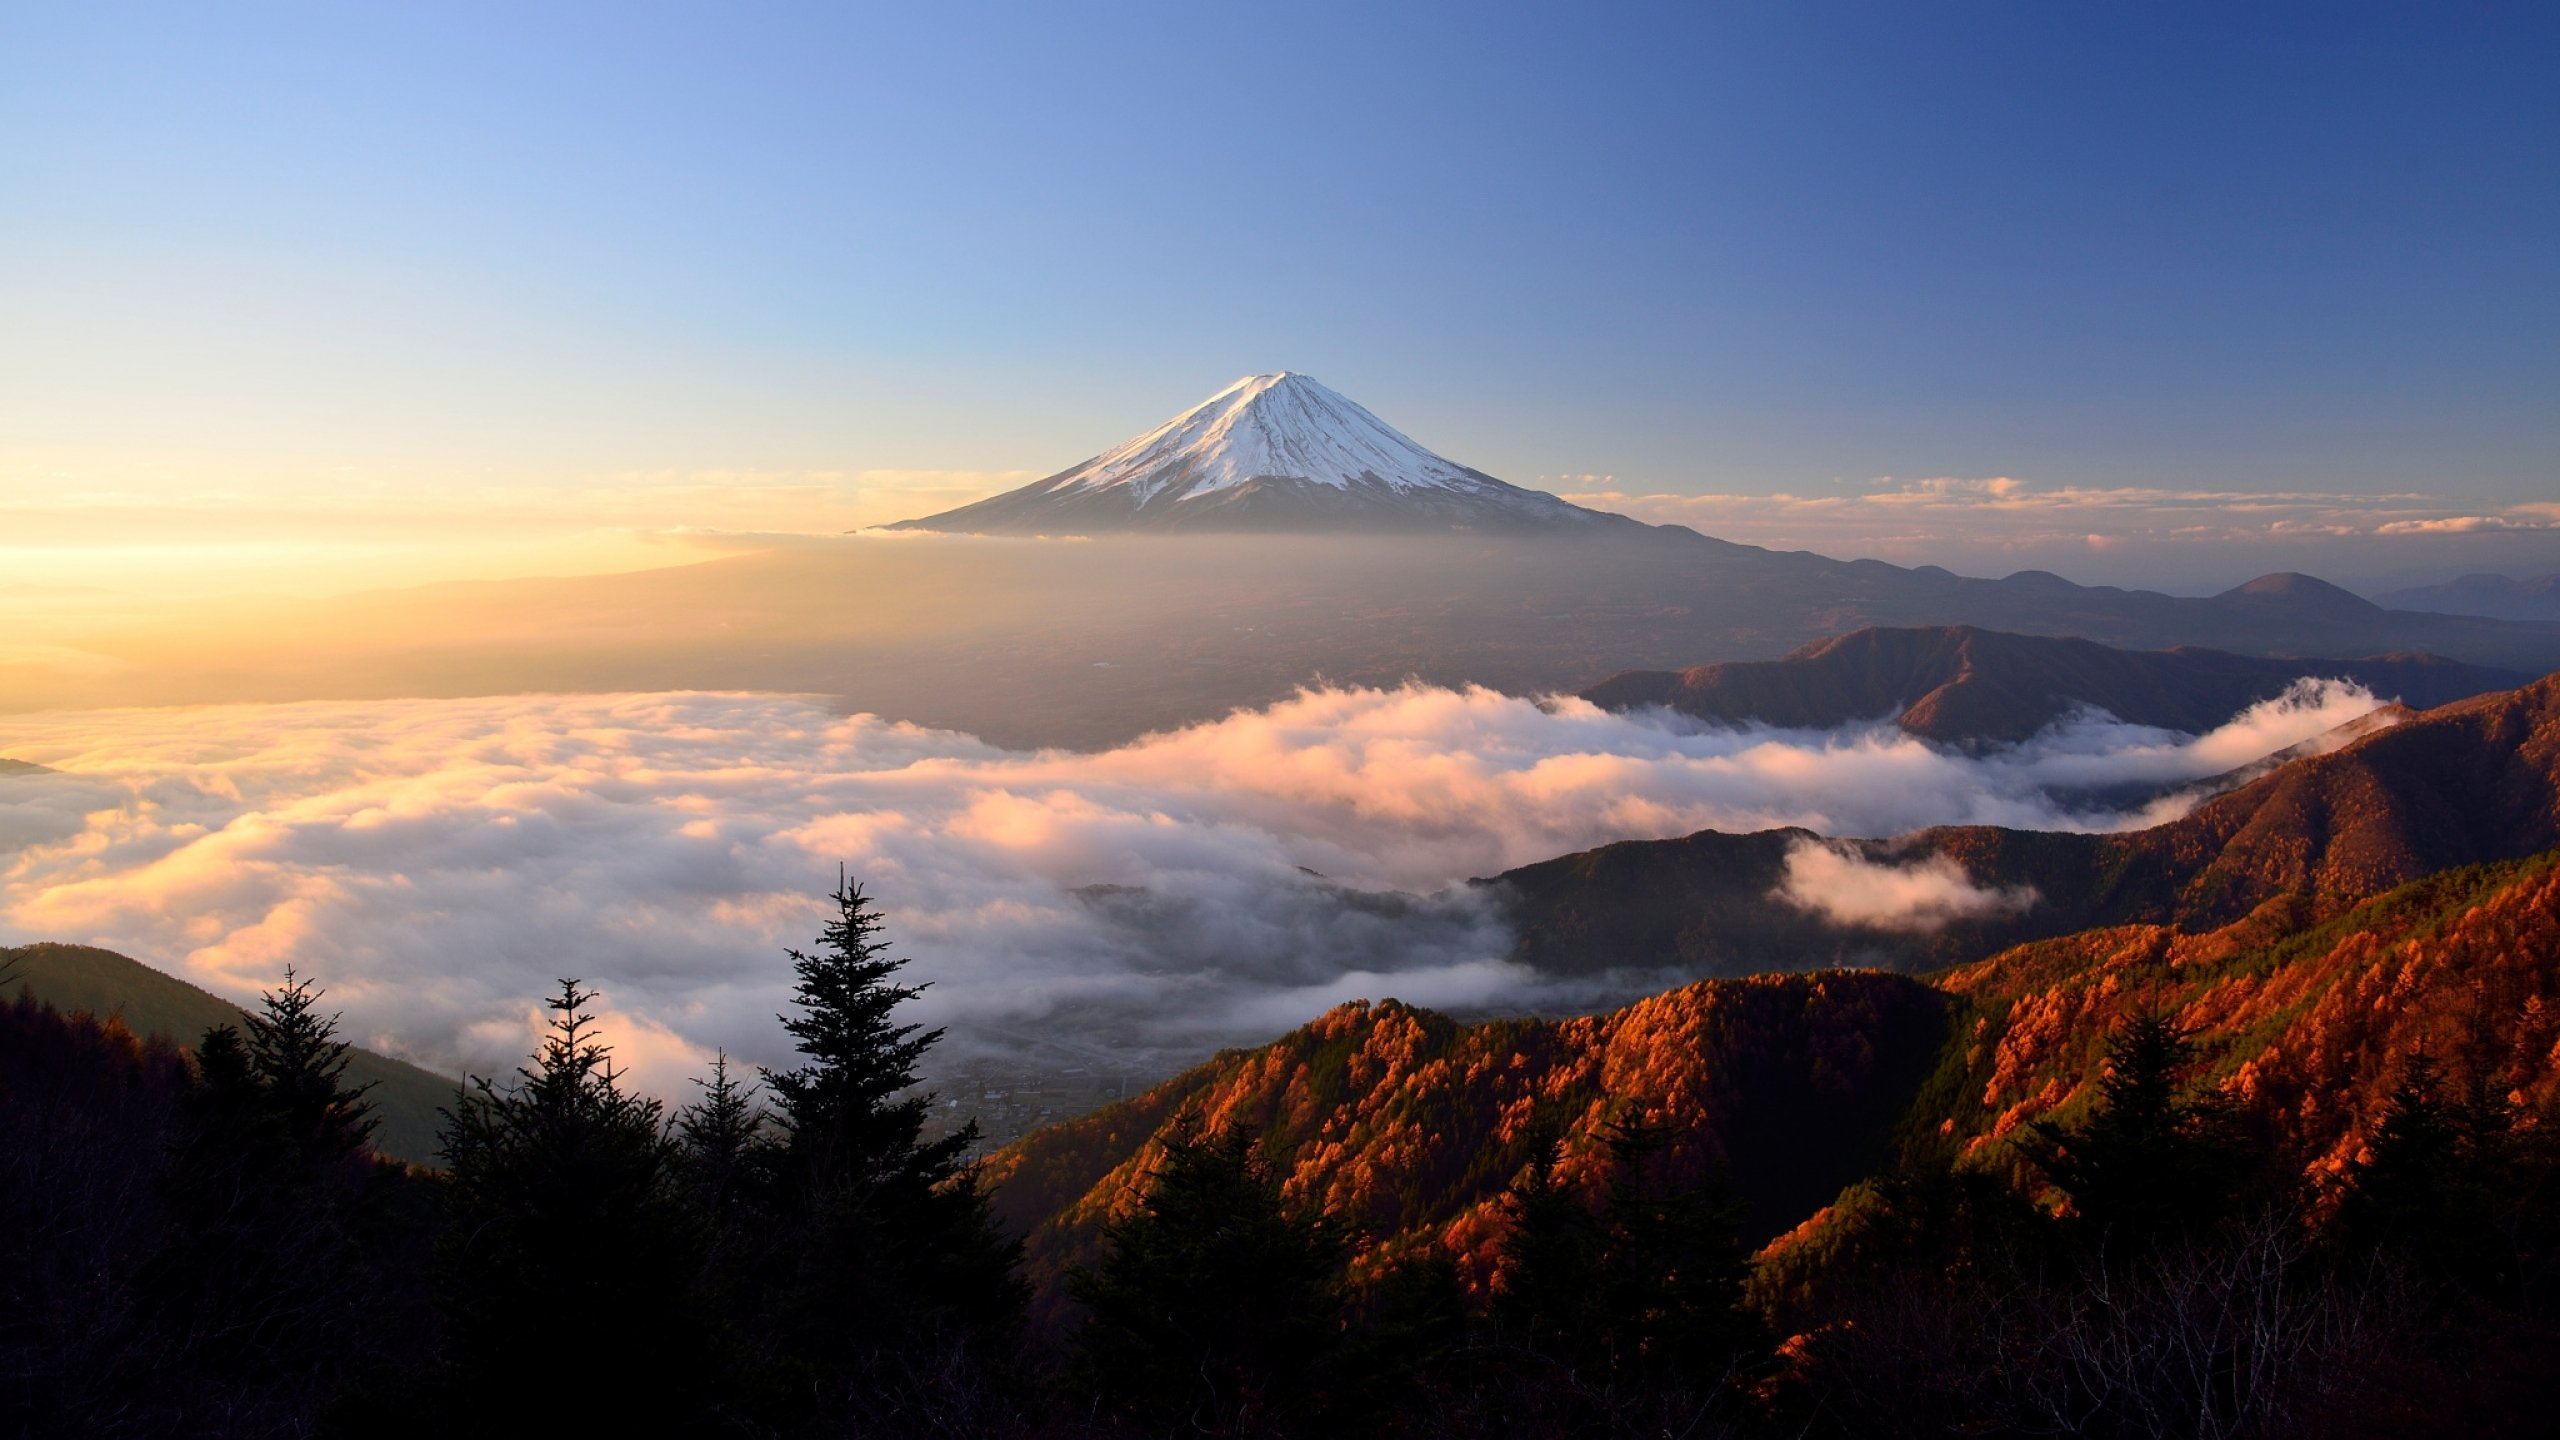 Mount Fuji Hd Hd Nature 4k Wallpapers Images Backgrounds